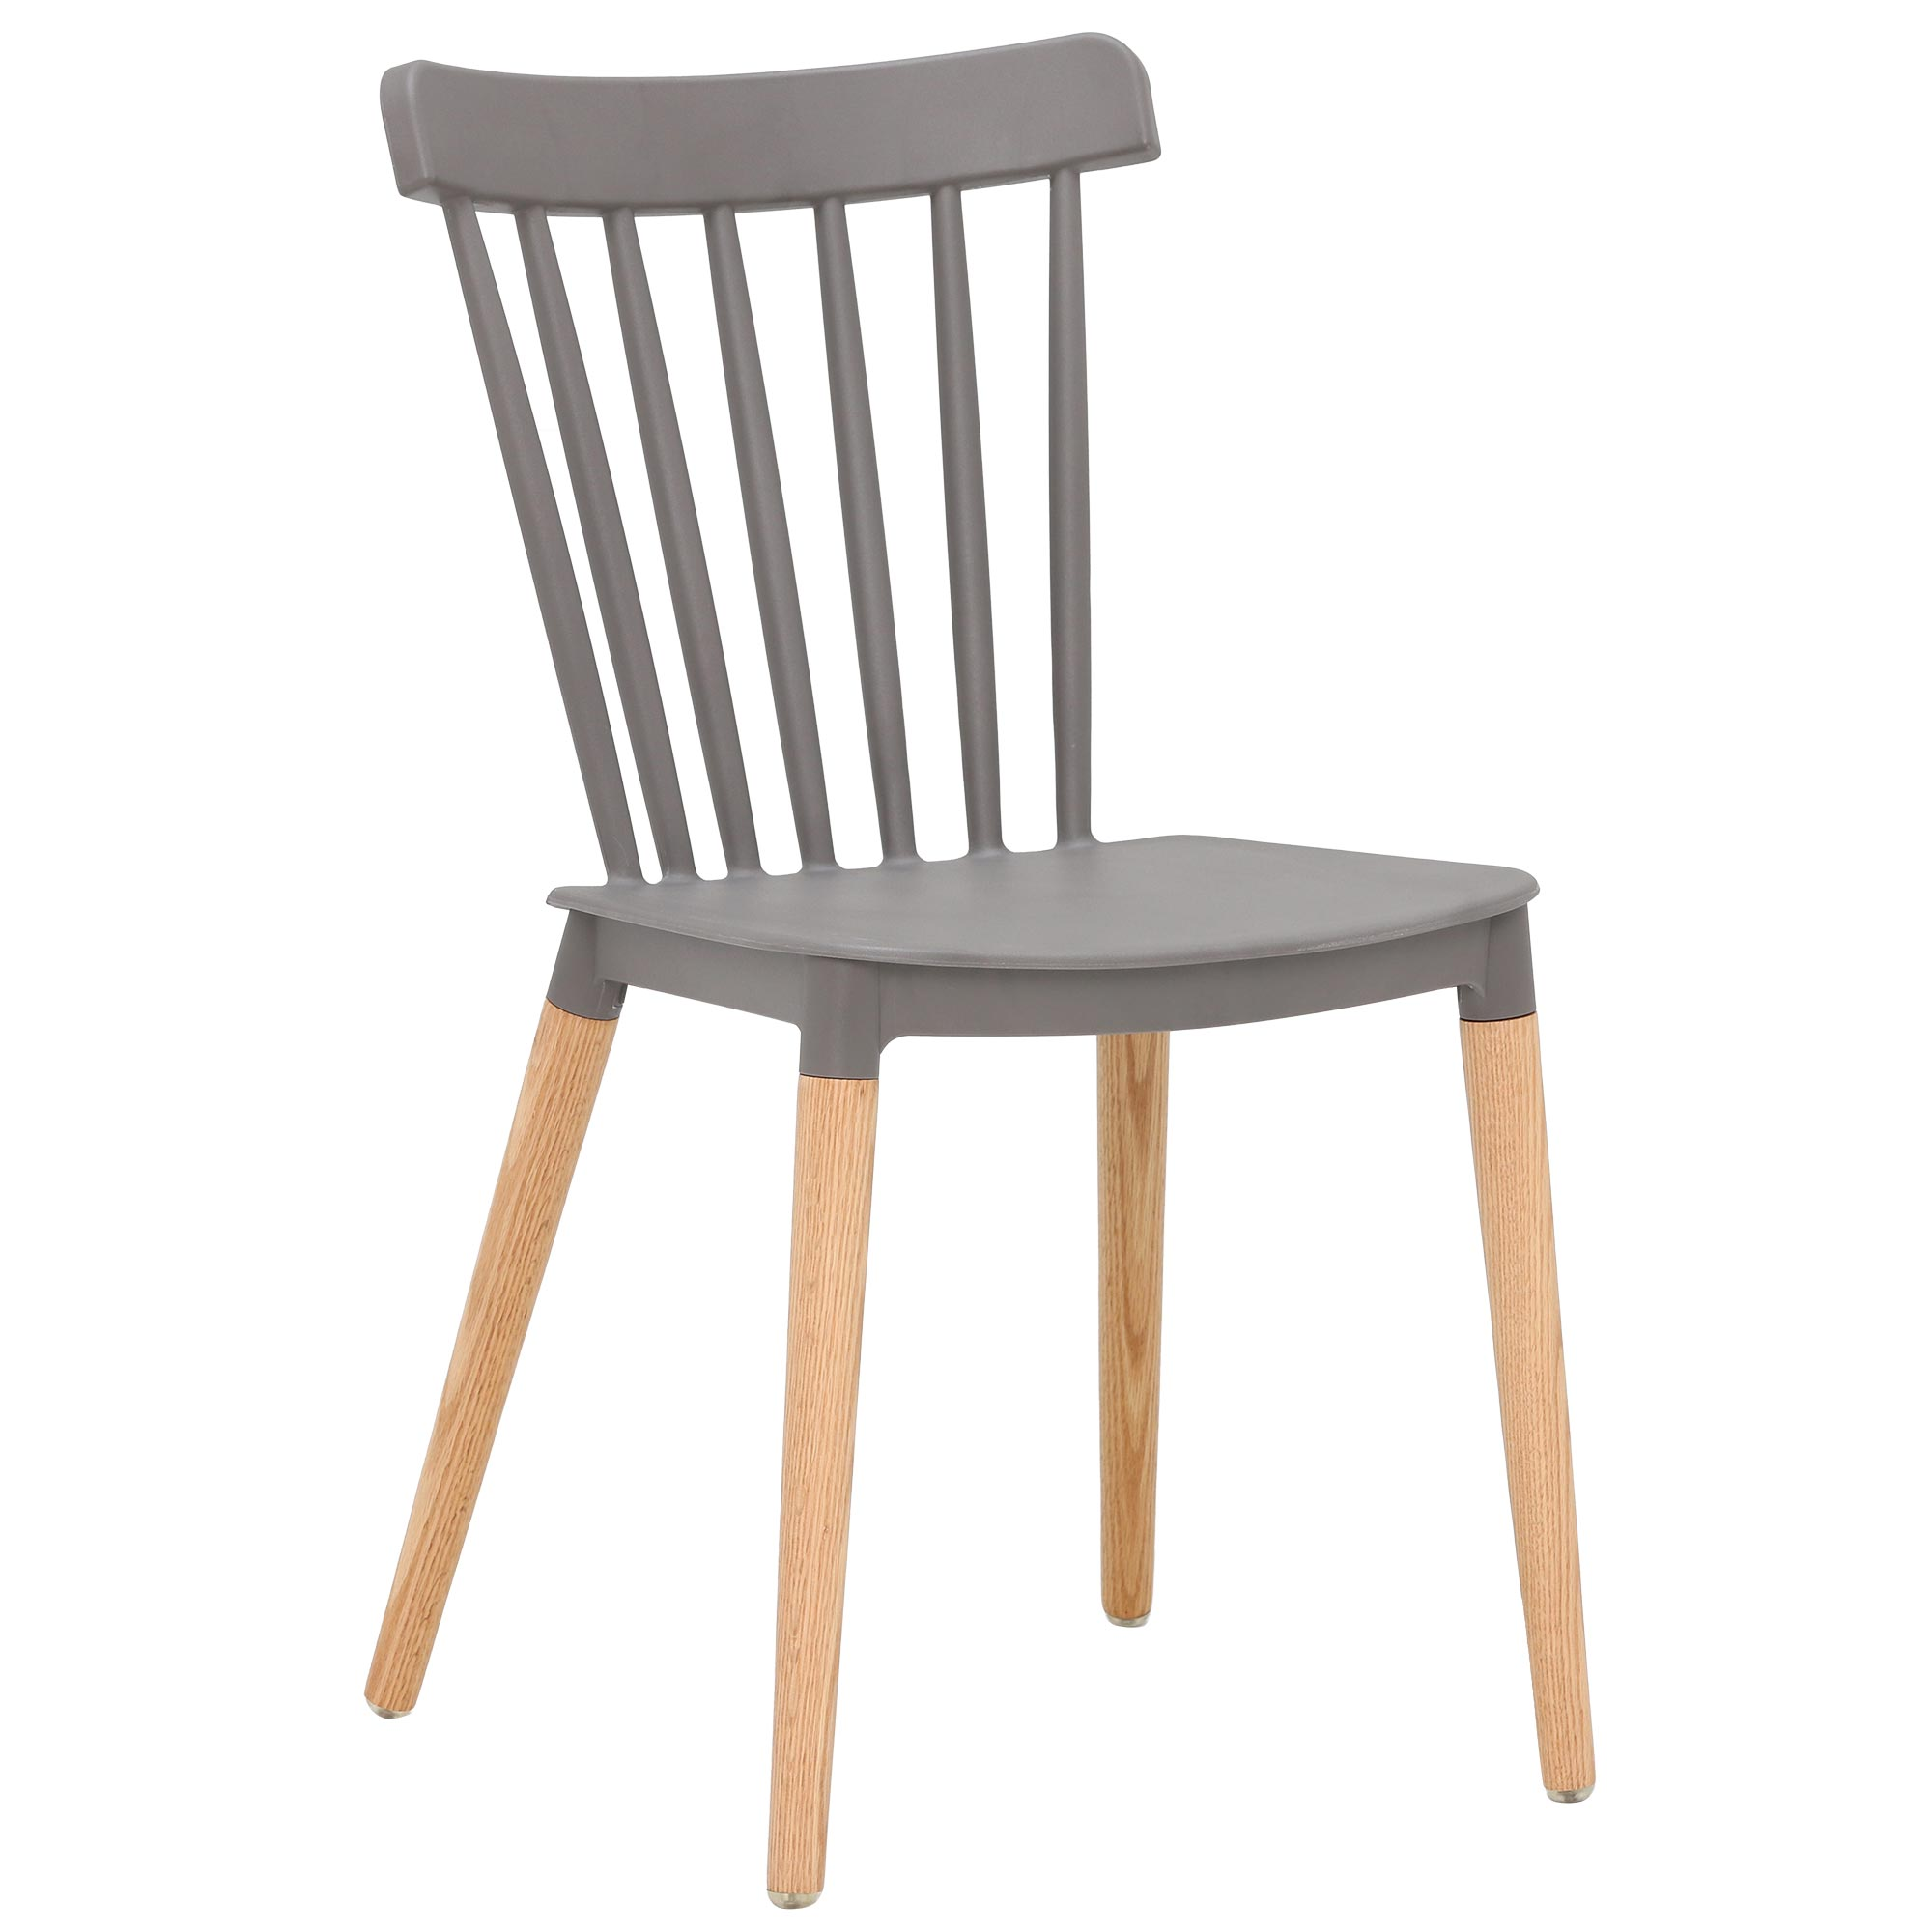 scandinavian design gray pp plastic dining chair with solid wood legs